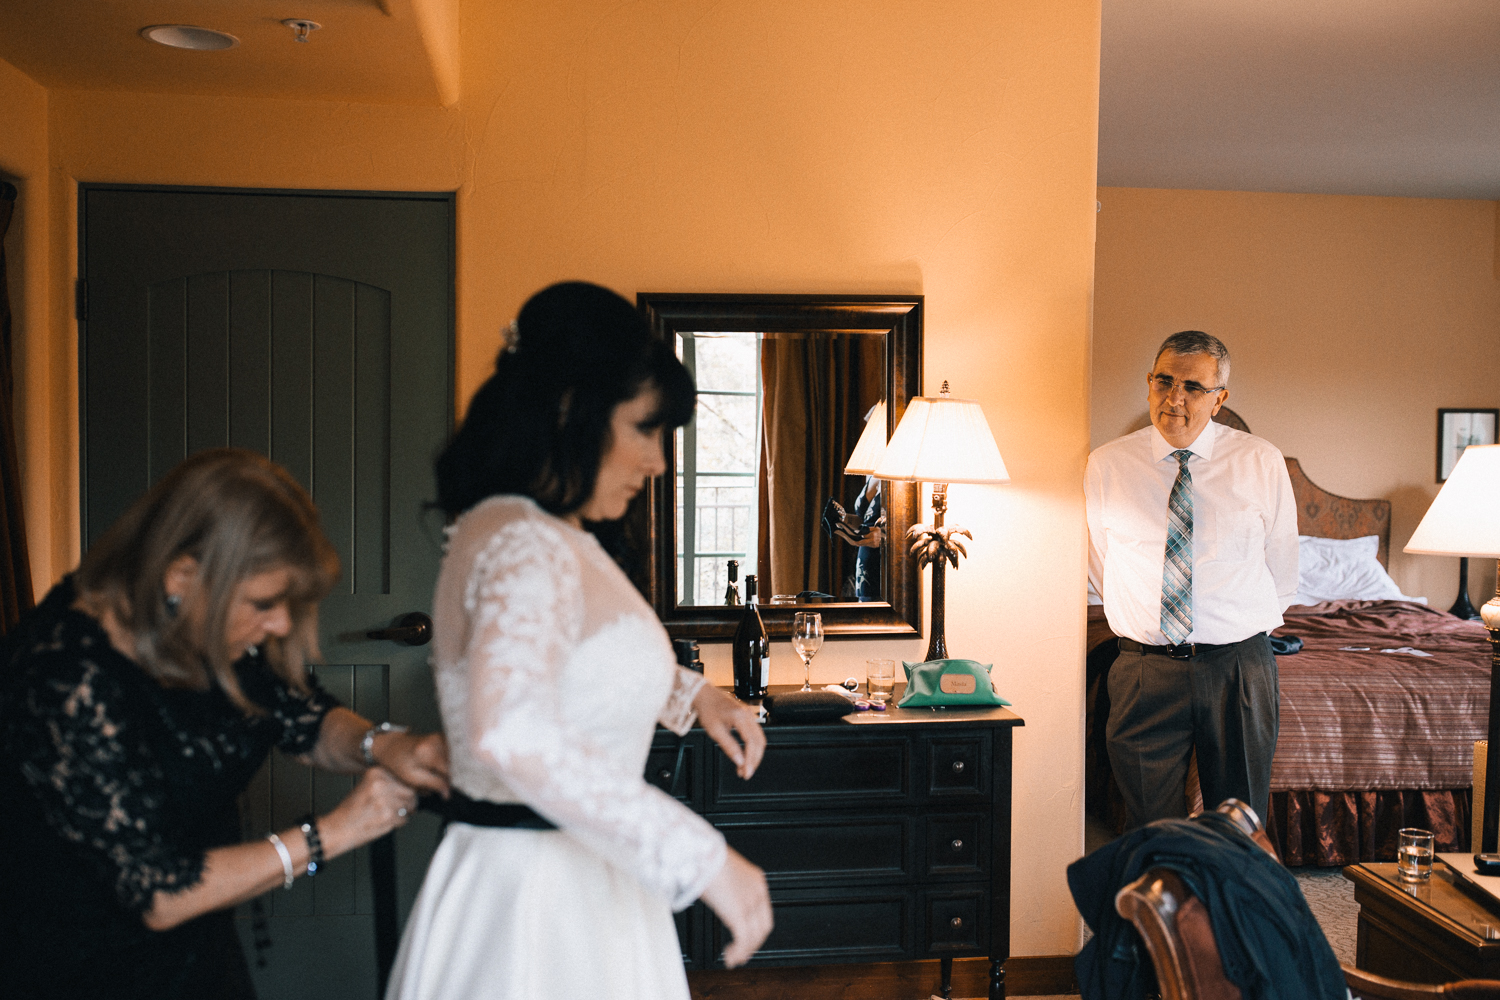 2019_05_ 182019.05.19 Lisa + Eddie South Bay Wedding Blog Photos Edited For Web 0051.jpg